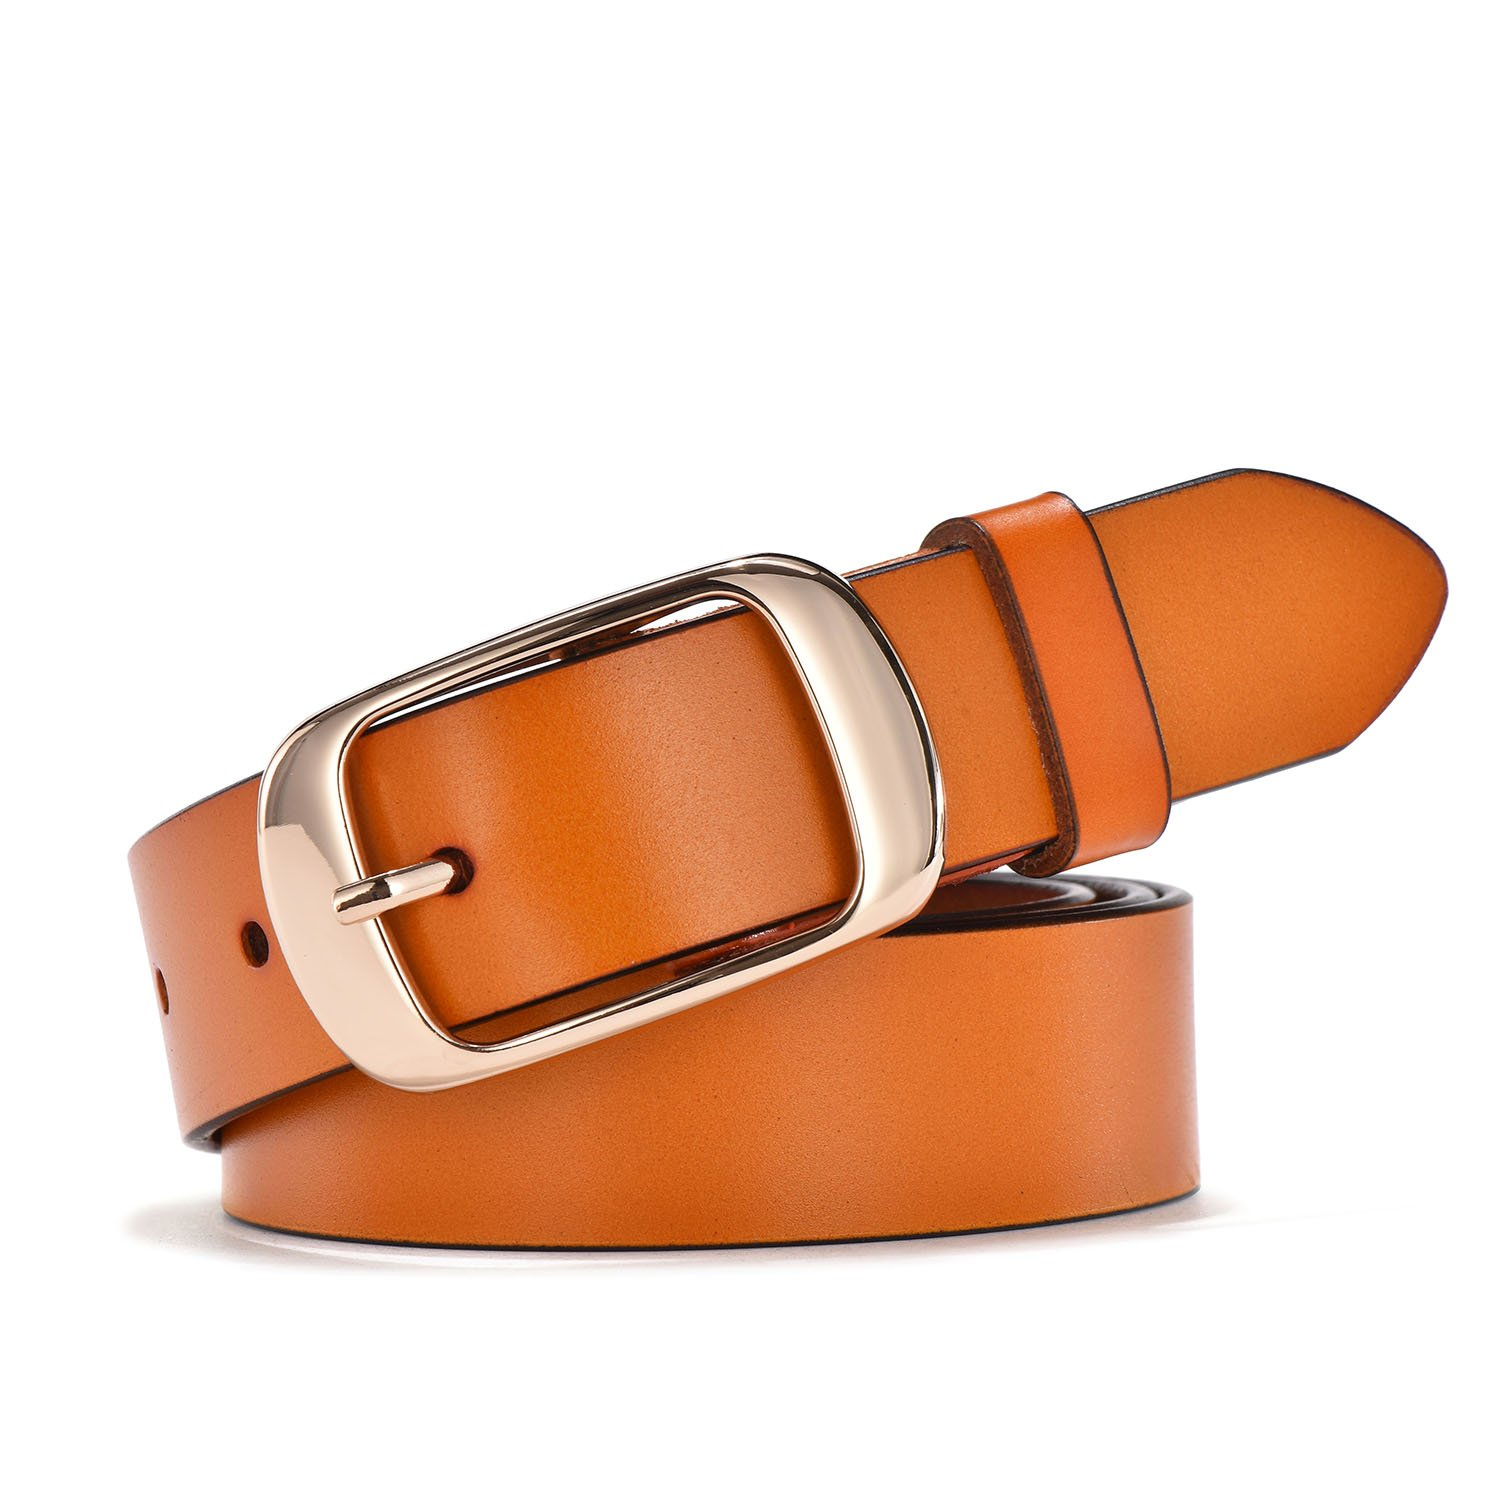 TUNGHO Simplicity Leather Belts For Women Polished Buckle Plus Size XXXL (L, Max pants size 41'', Golden Buckle/Brown)